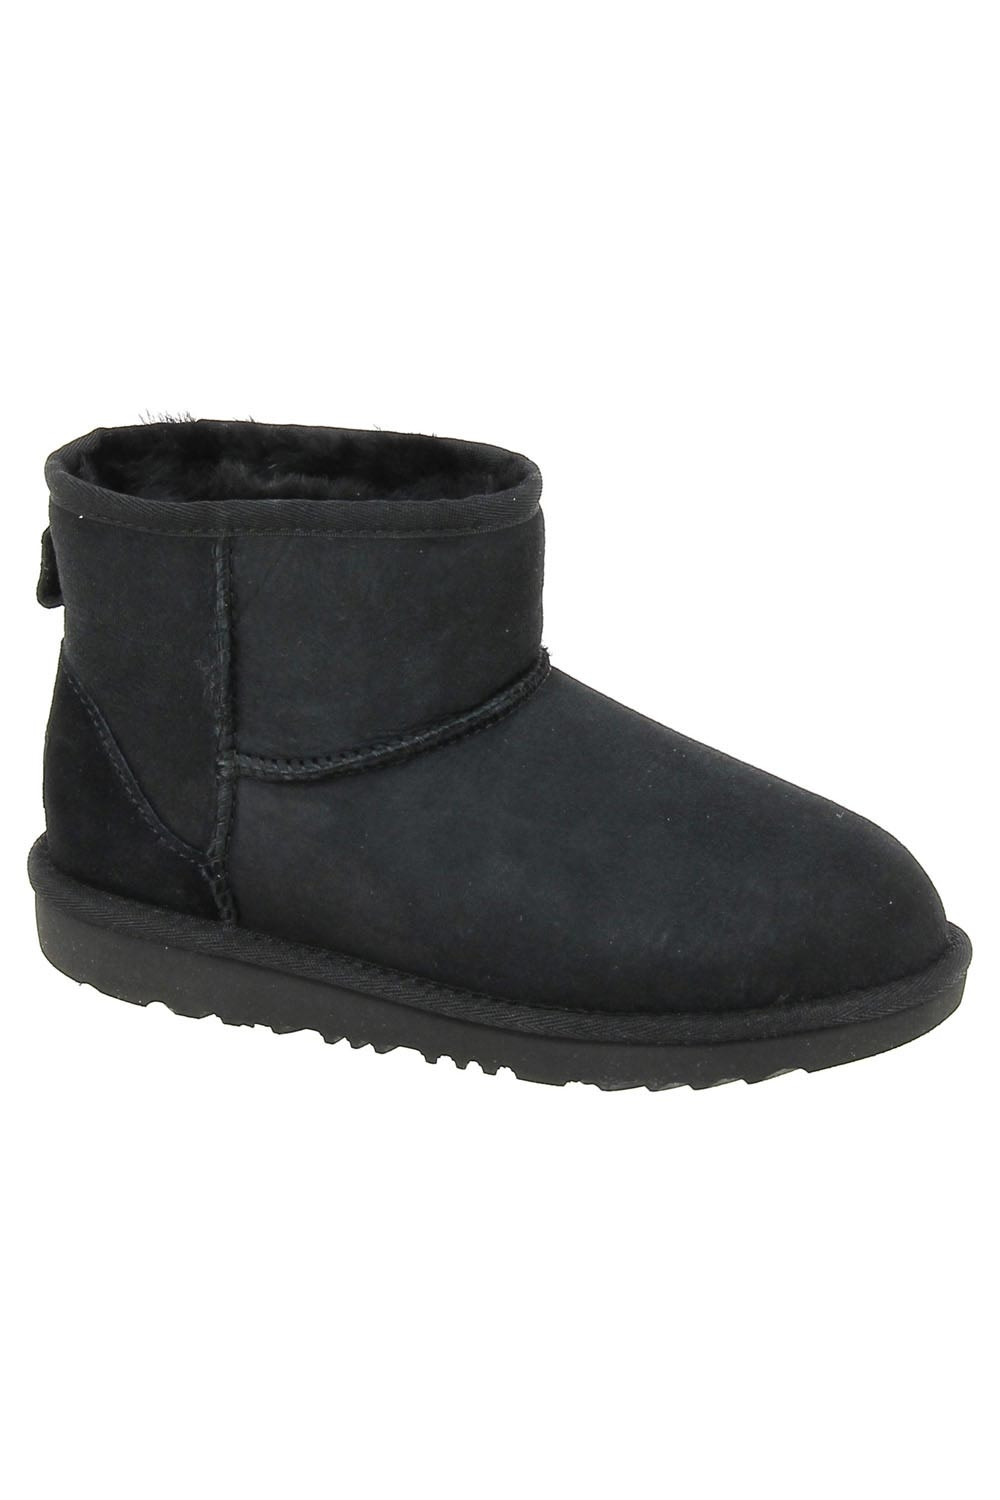 ugg chaussure fille